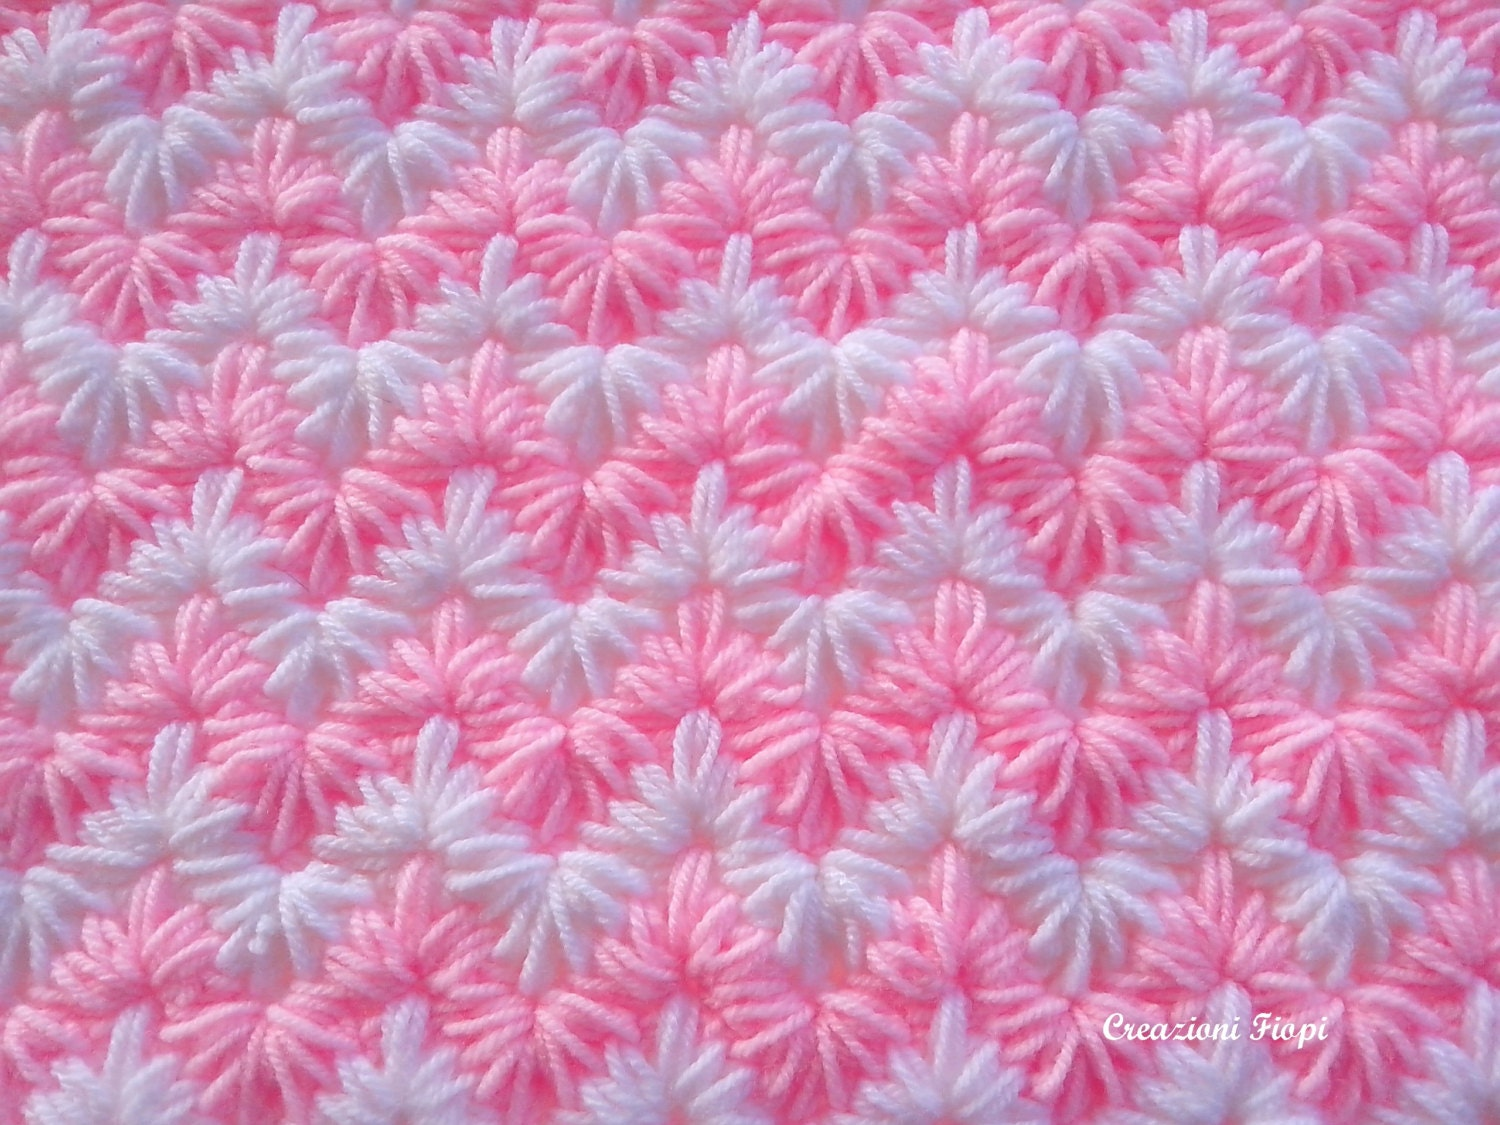 Crochet Tutorial Zigzag : Baby Blanket/crochet zig zag puff stitch/ Tutorial /crochet zigzag ...